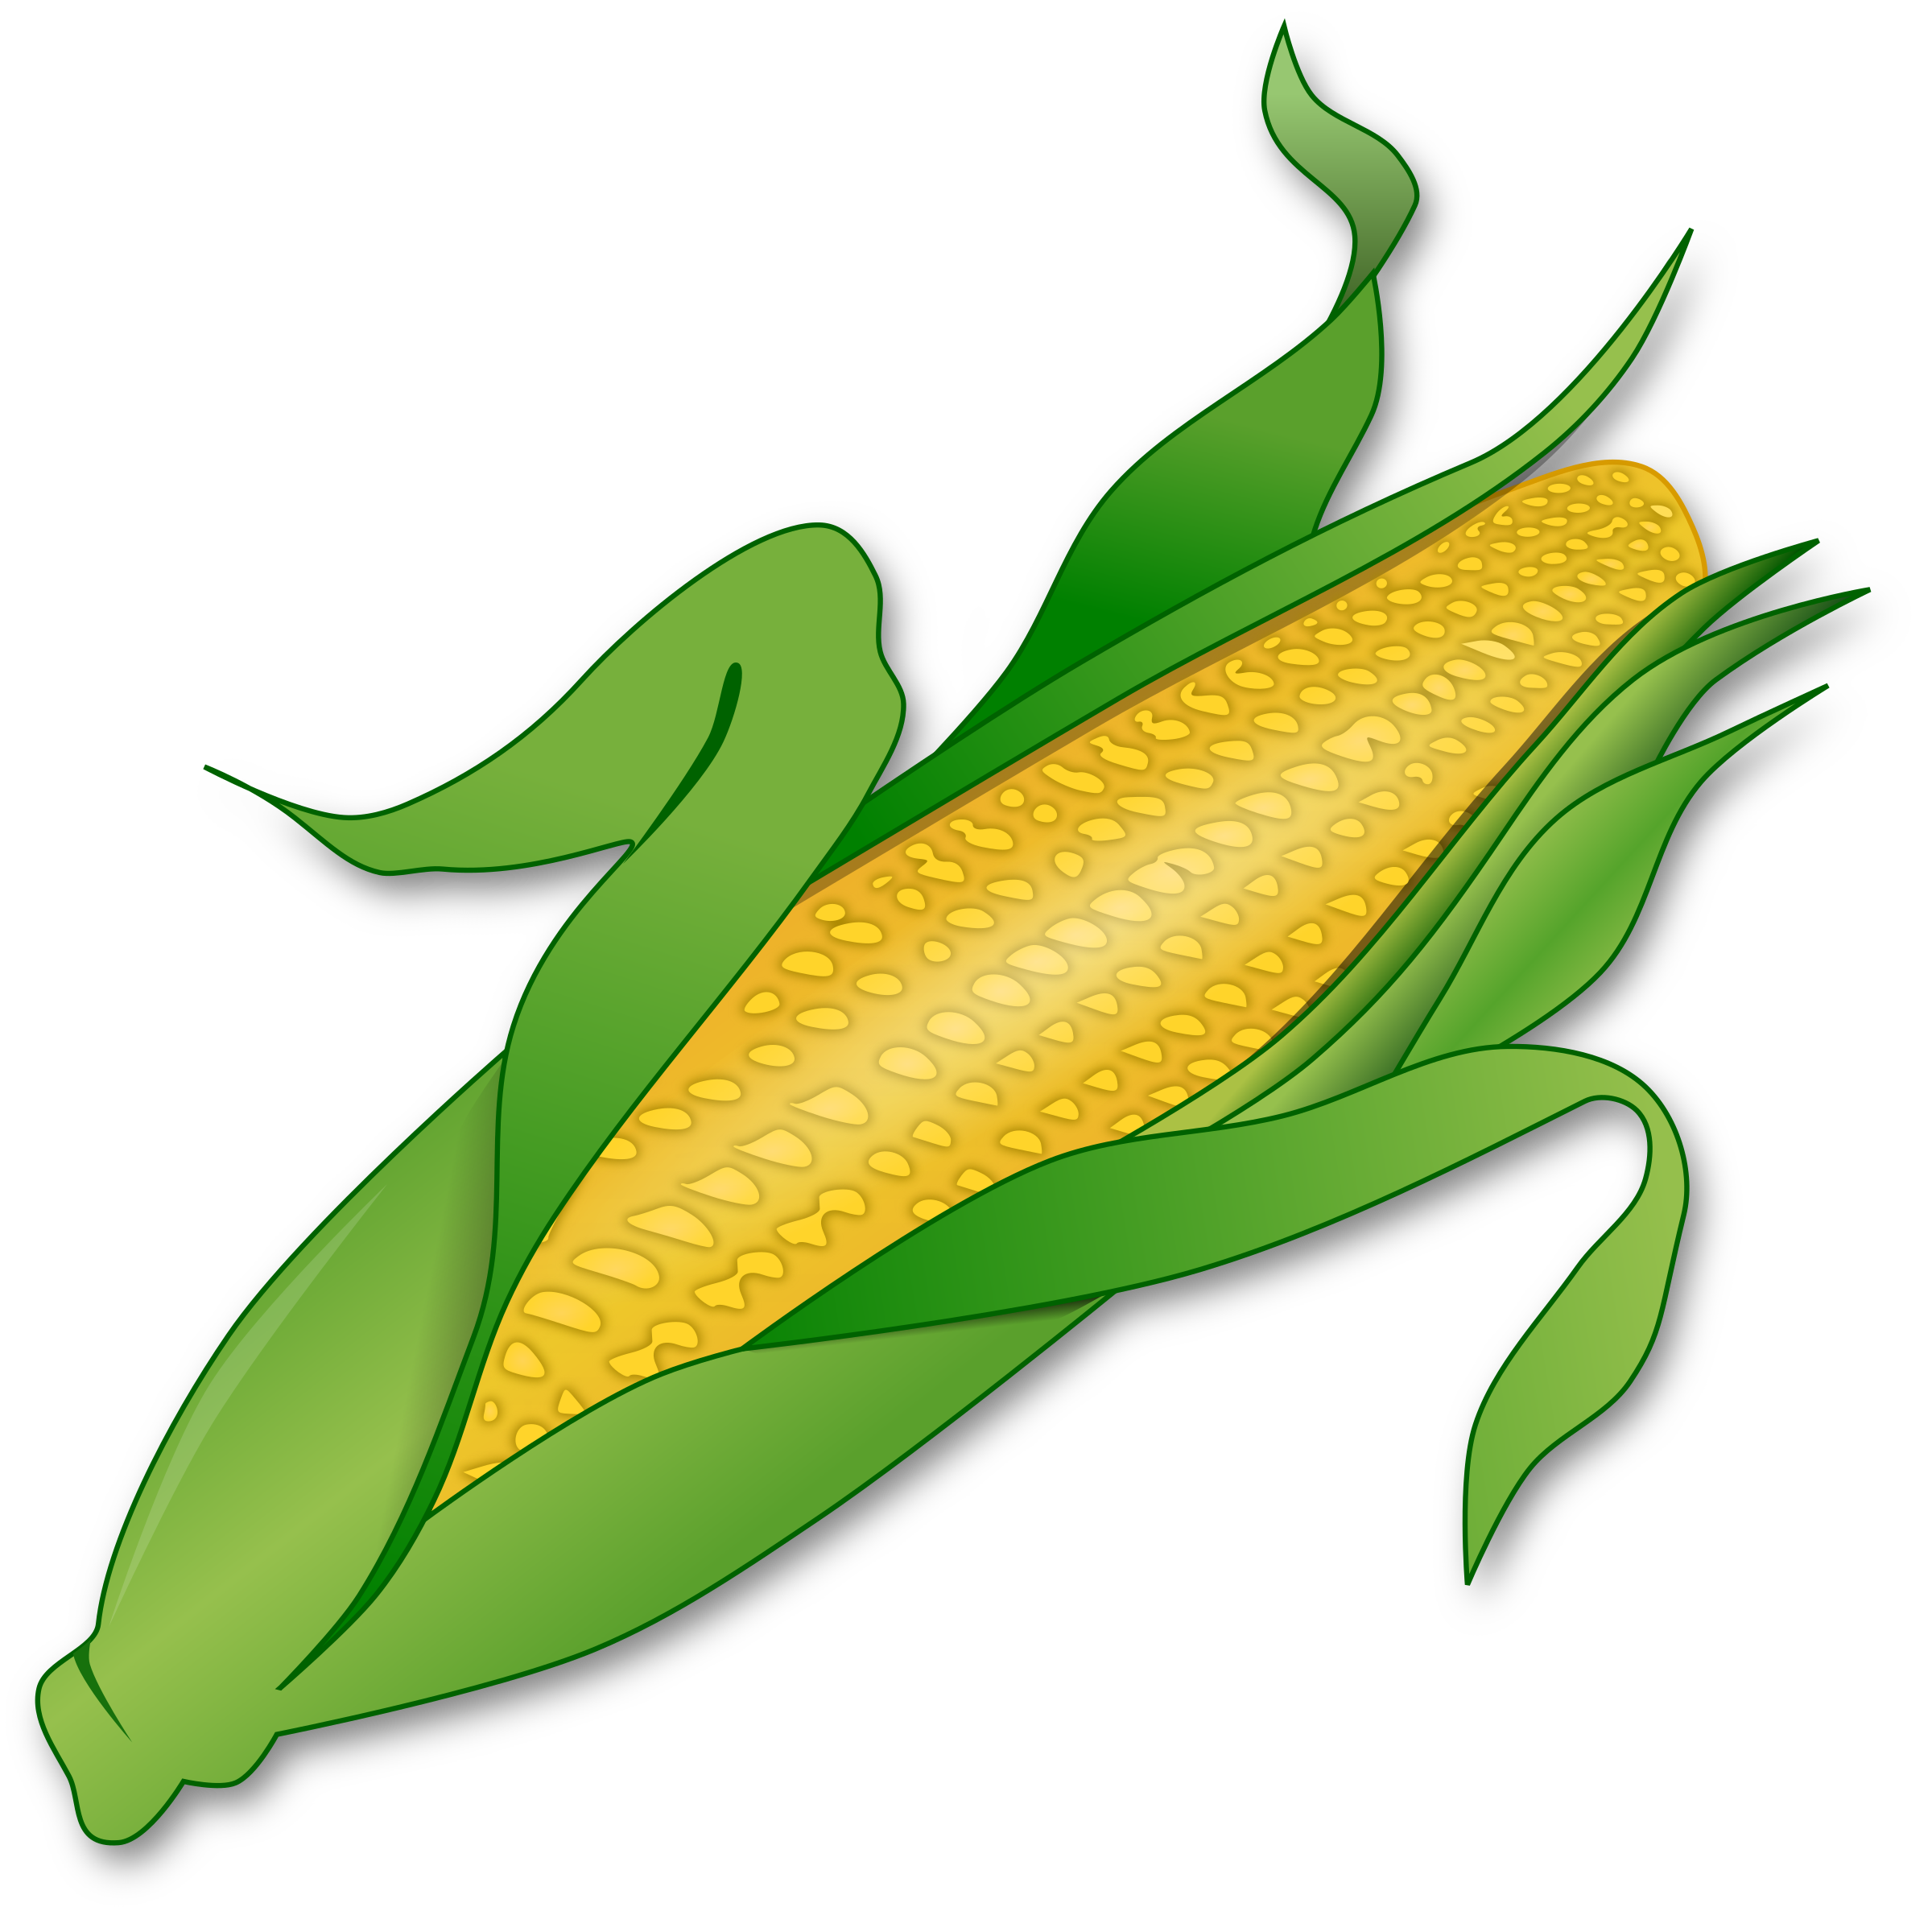 Corn by gnokii